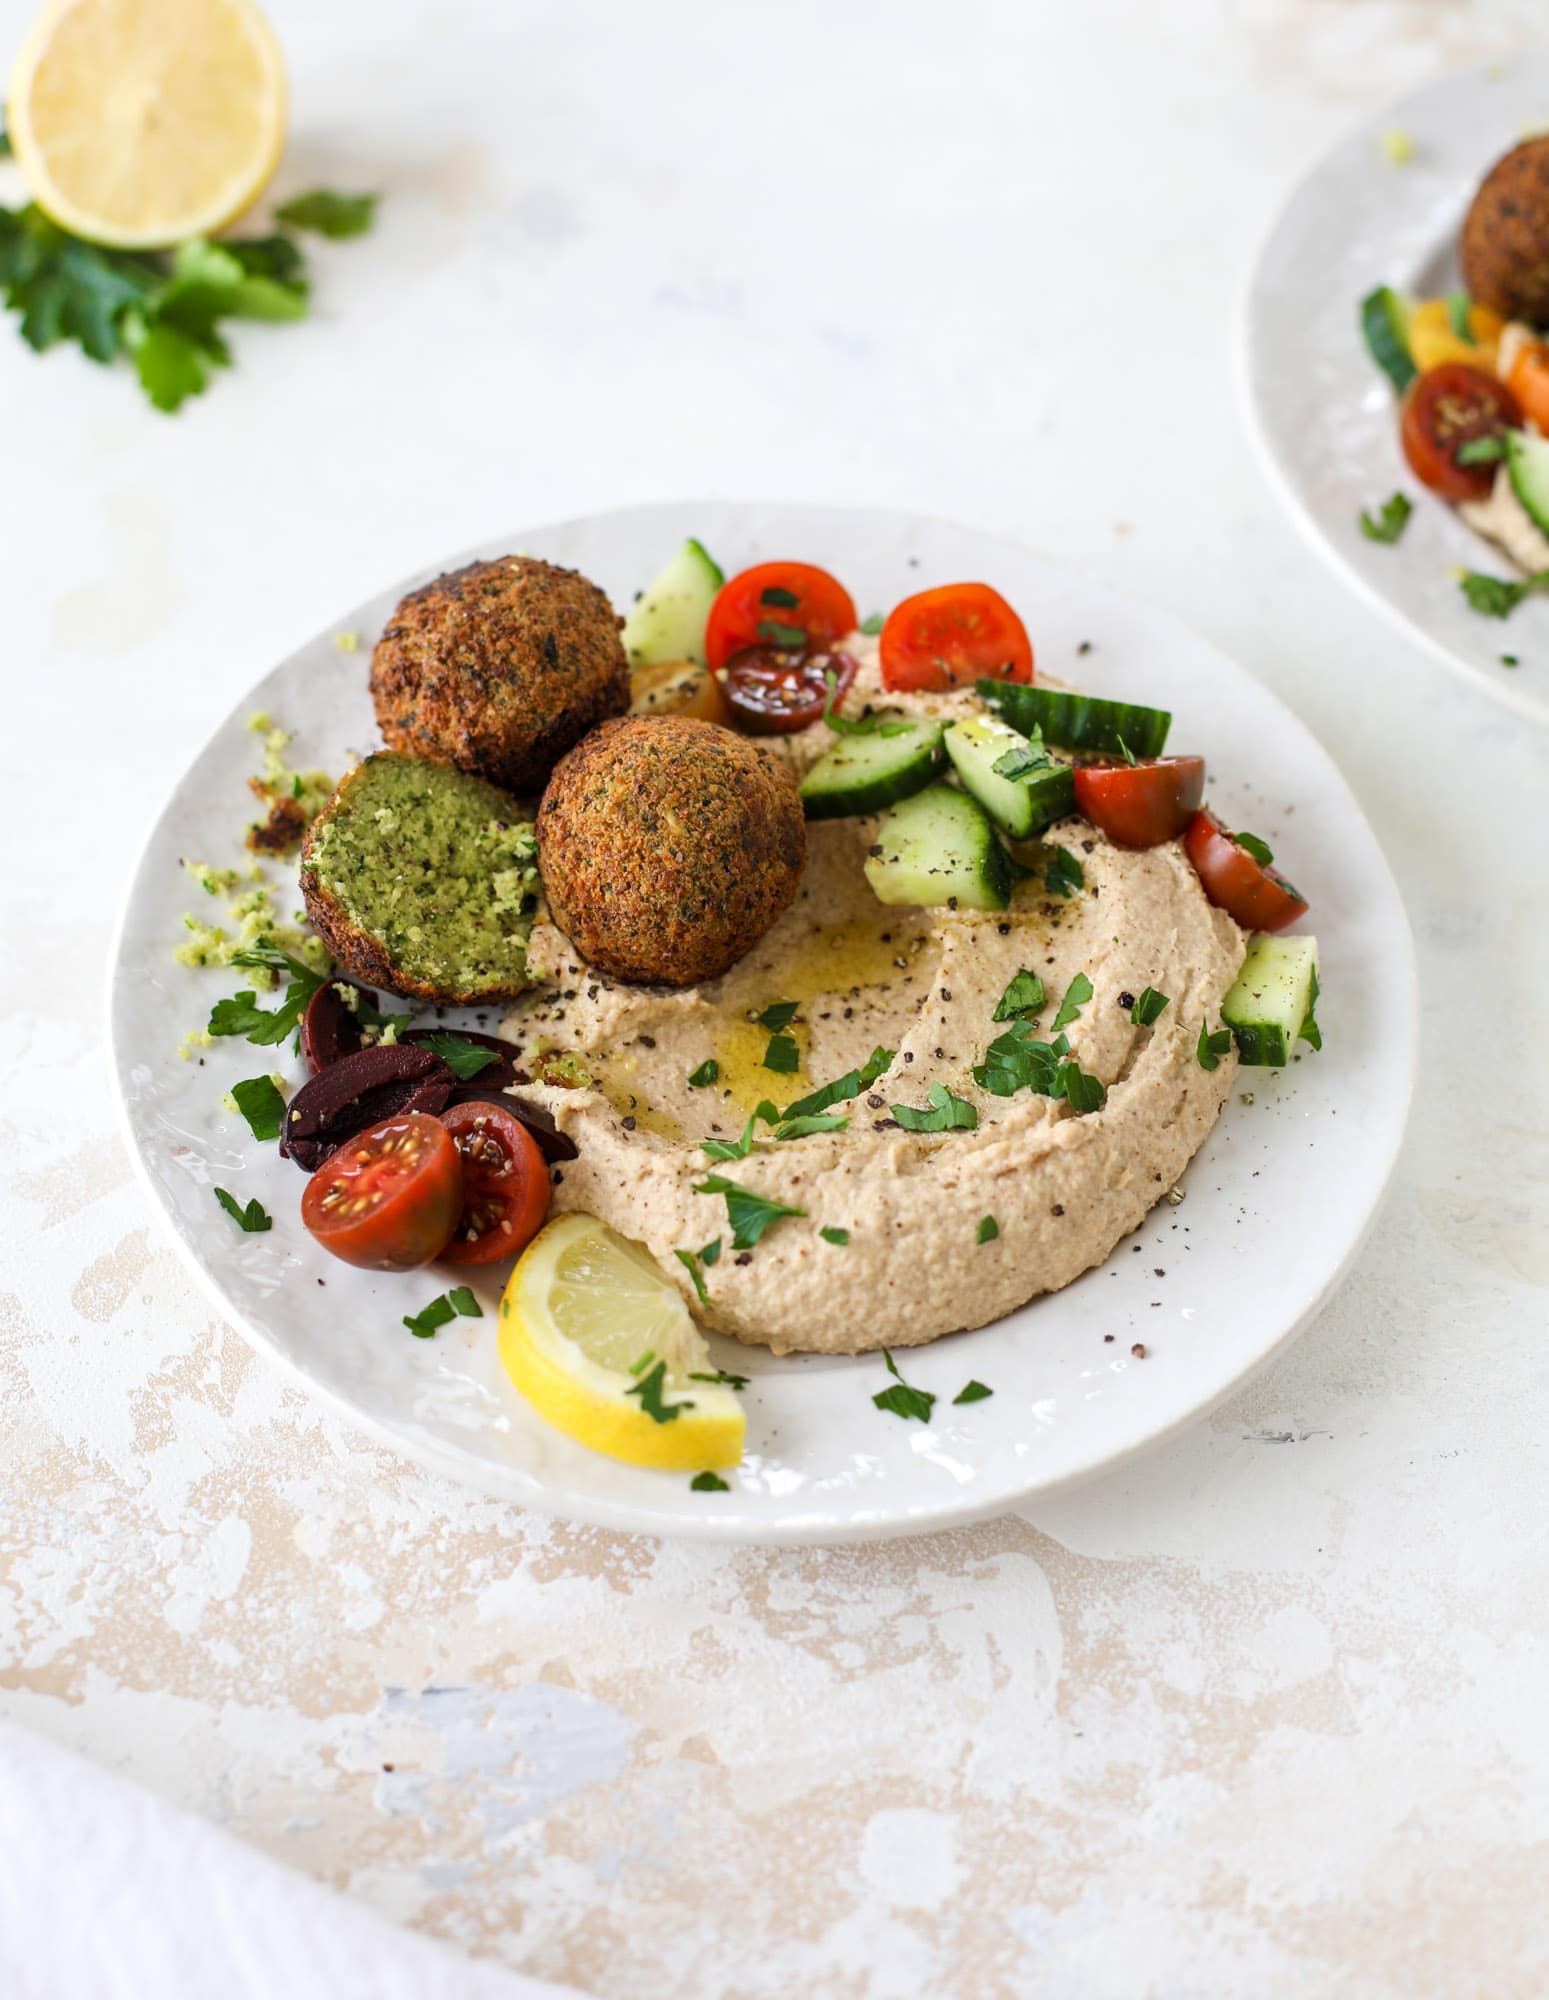 Green goddess falafel is hearty and flavorful, served over the creamiest cauliflower hummus, with tomatoes, olive, cucumbers and feta. Yum! I howsweeteats.com #falafel #cauliflowerhummus